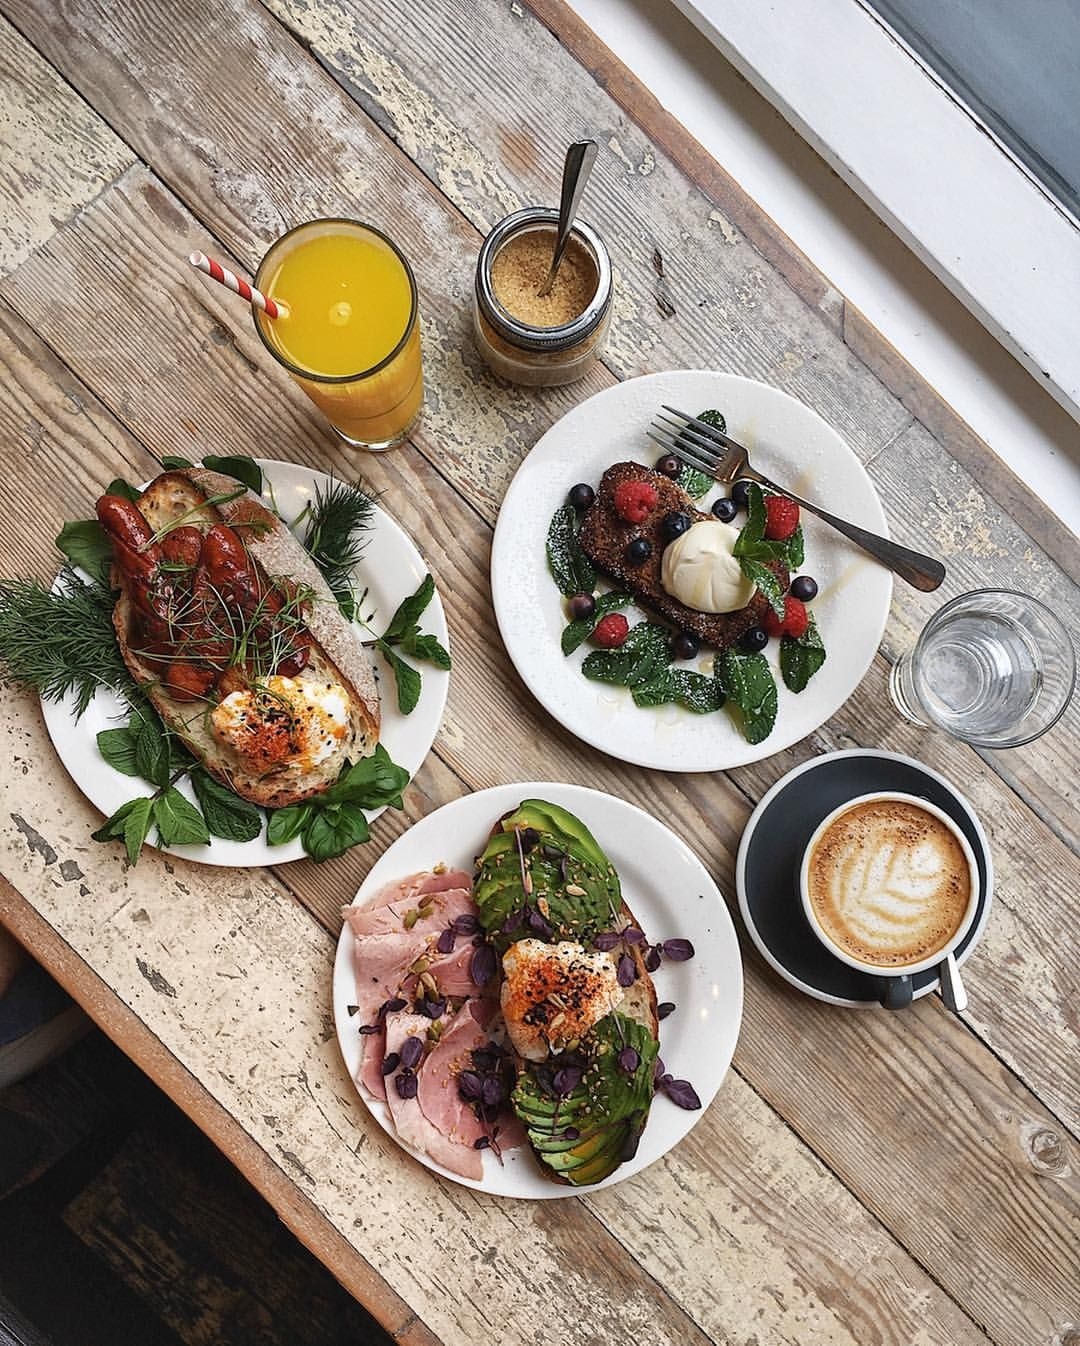 Started yesterday morning at Timberyard in Covent Garden ...